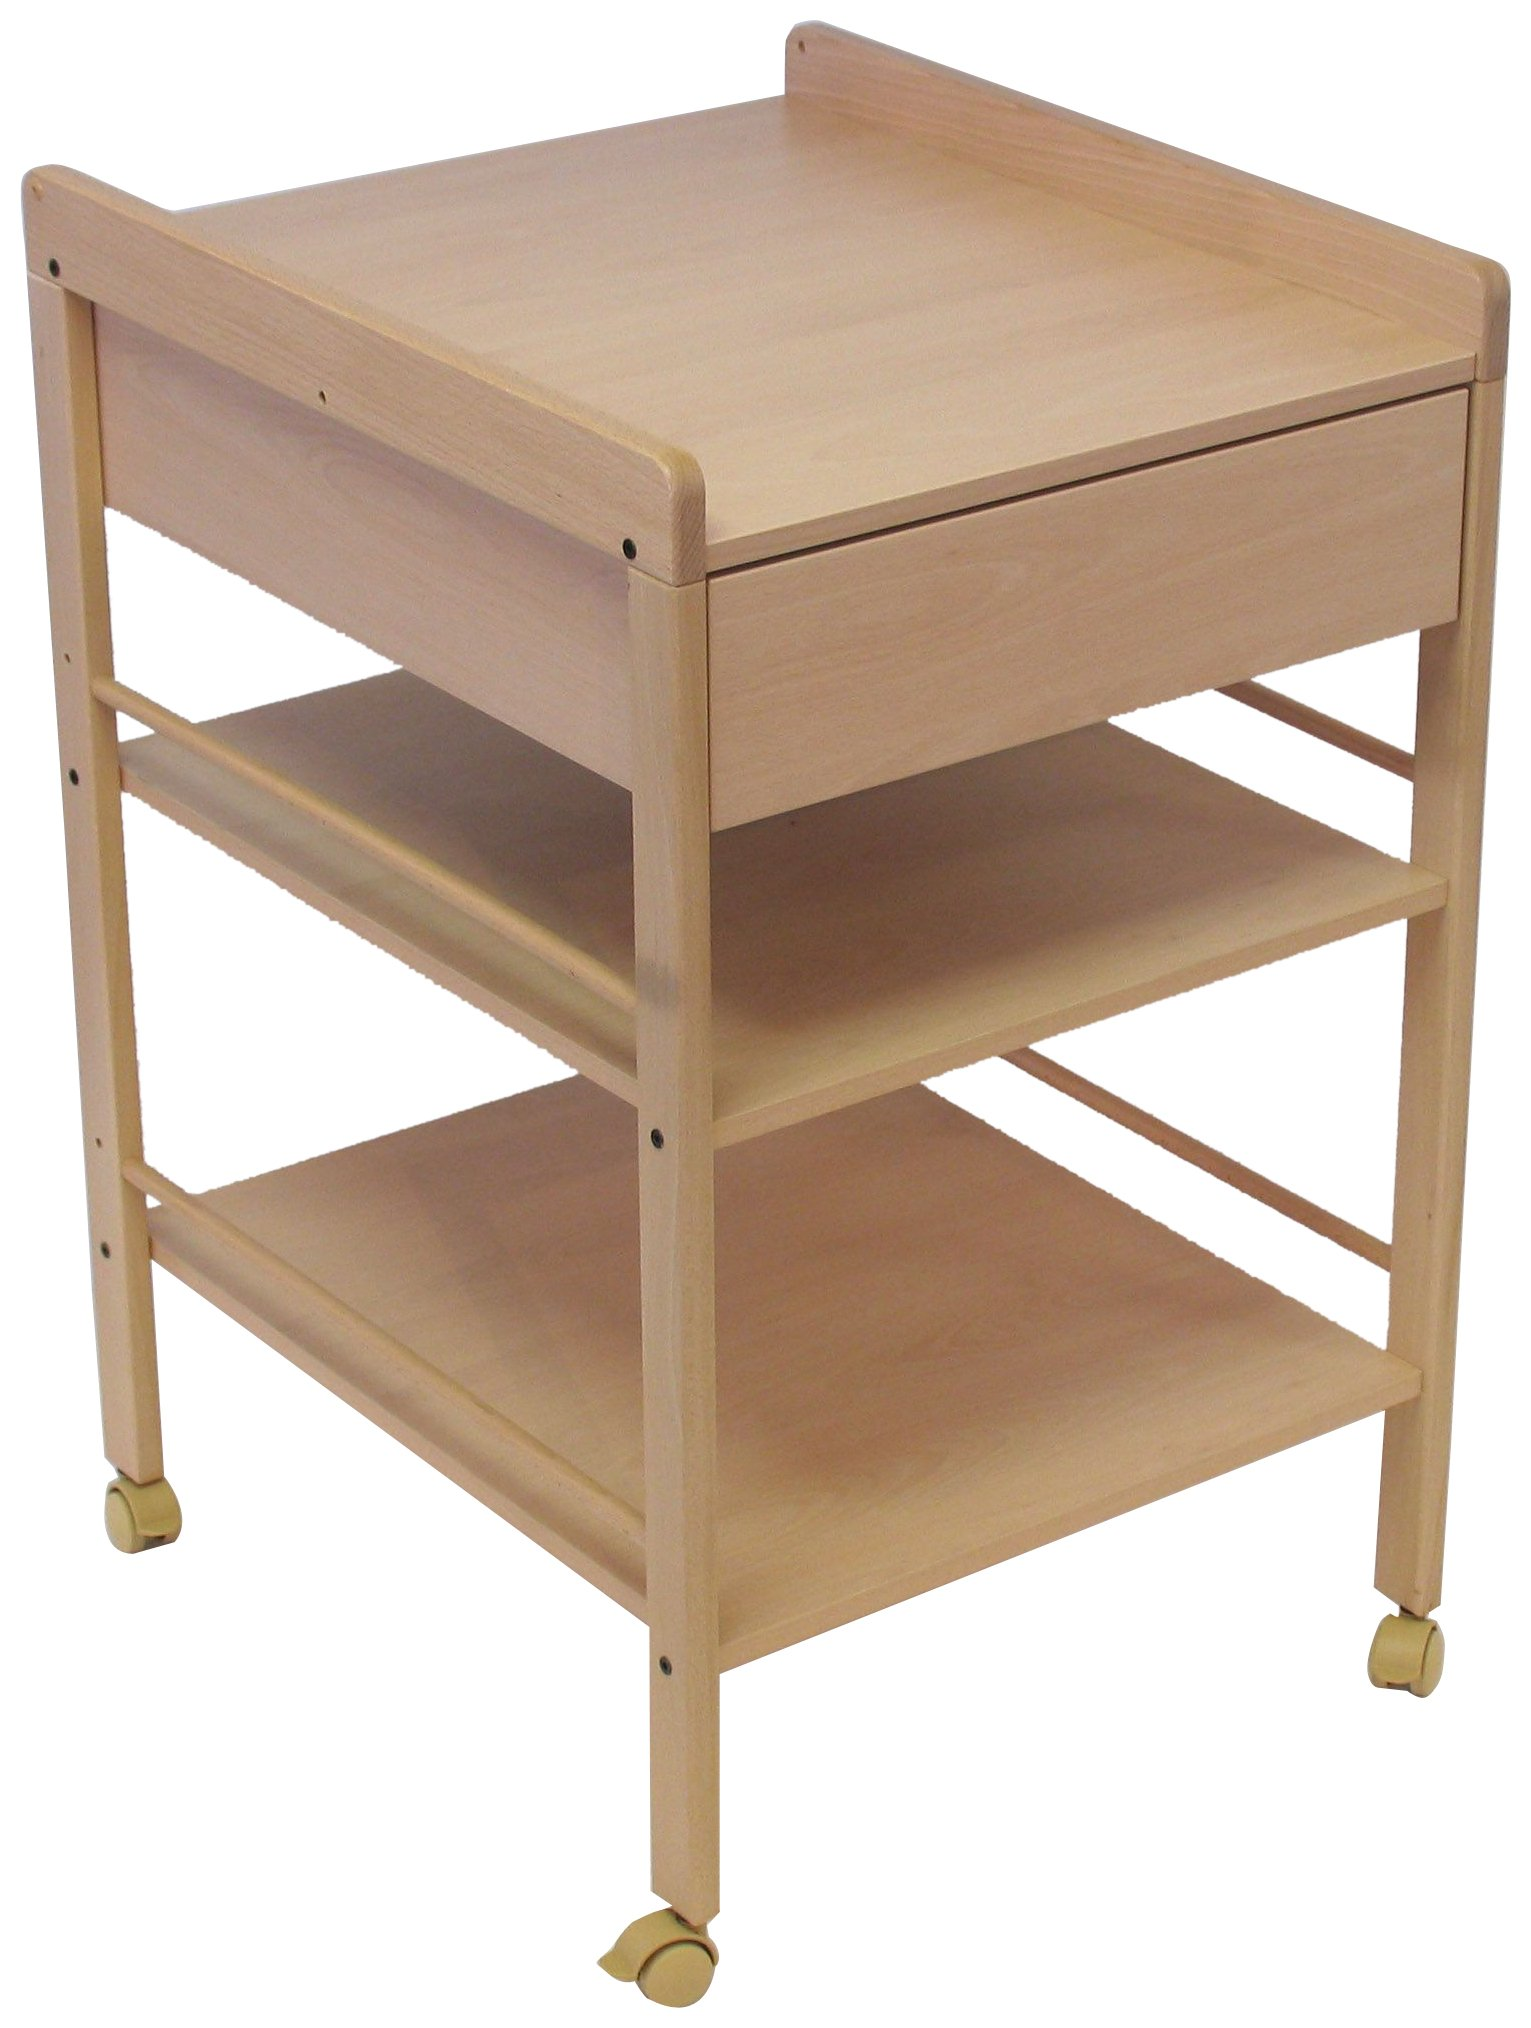 """Geuther Lotta Changing Table (Natural) Geuther Geuther strive to minimise Volatile Organic Compounds """"VOC's"""" used in the manufacturer of product which means much less gas or odour emissions. Geuther use the highest quality beech wood grown in Germany in most of their manufacturing which makes their wooden products sturdier,longer life,and much more resilient to knocks and bangs. Geuther use only water based lacquers and paints which means nothing toxic is present in any of their furniture. 1"""